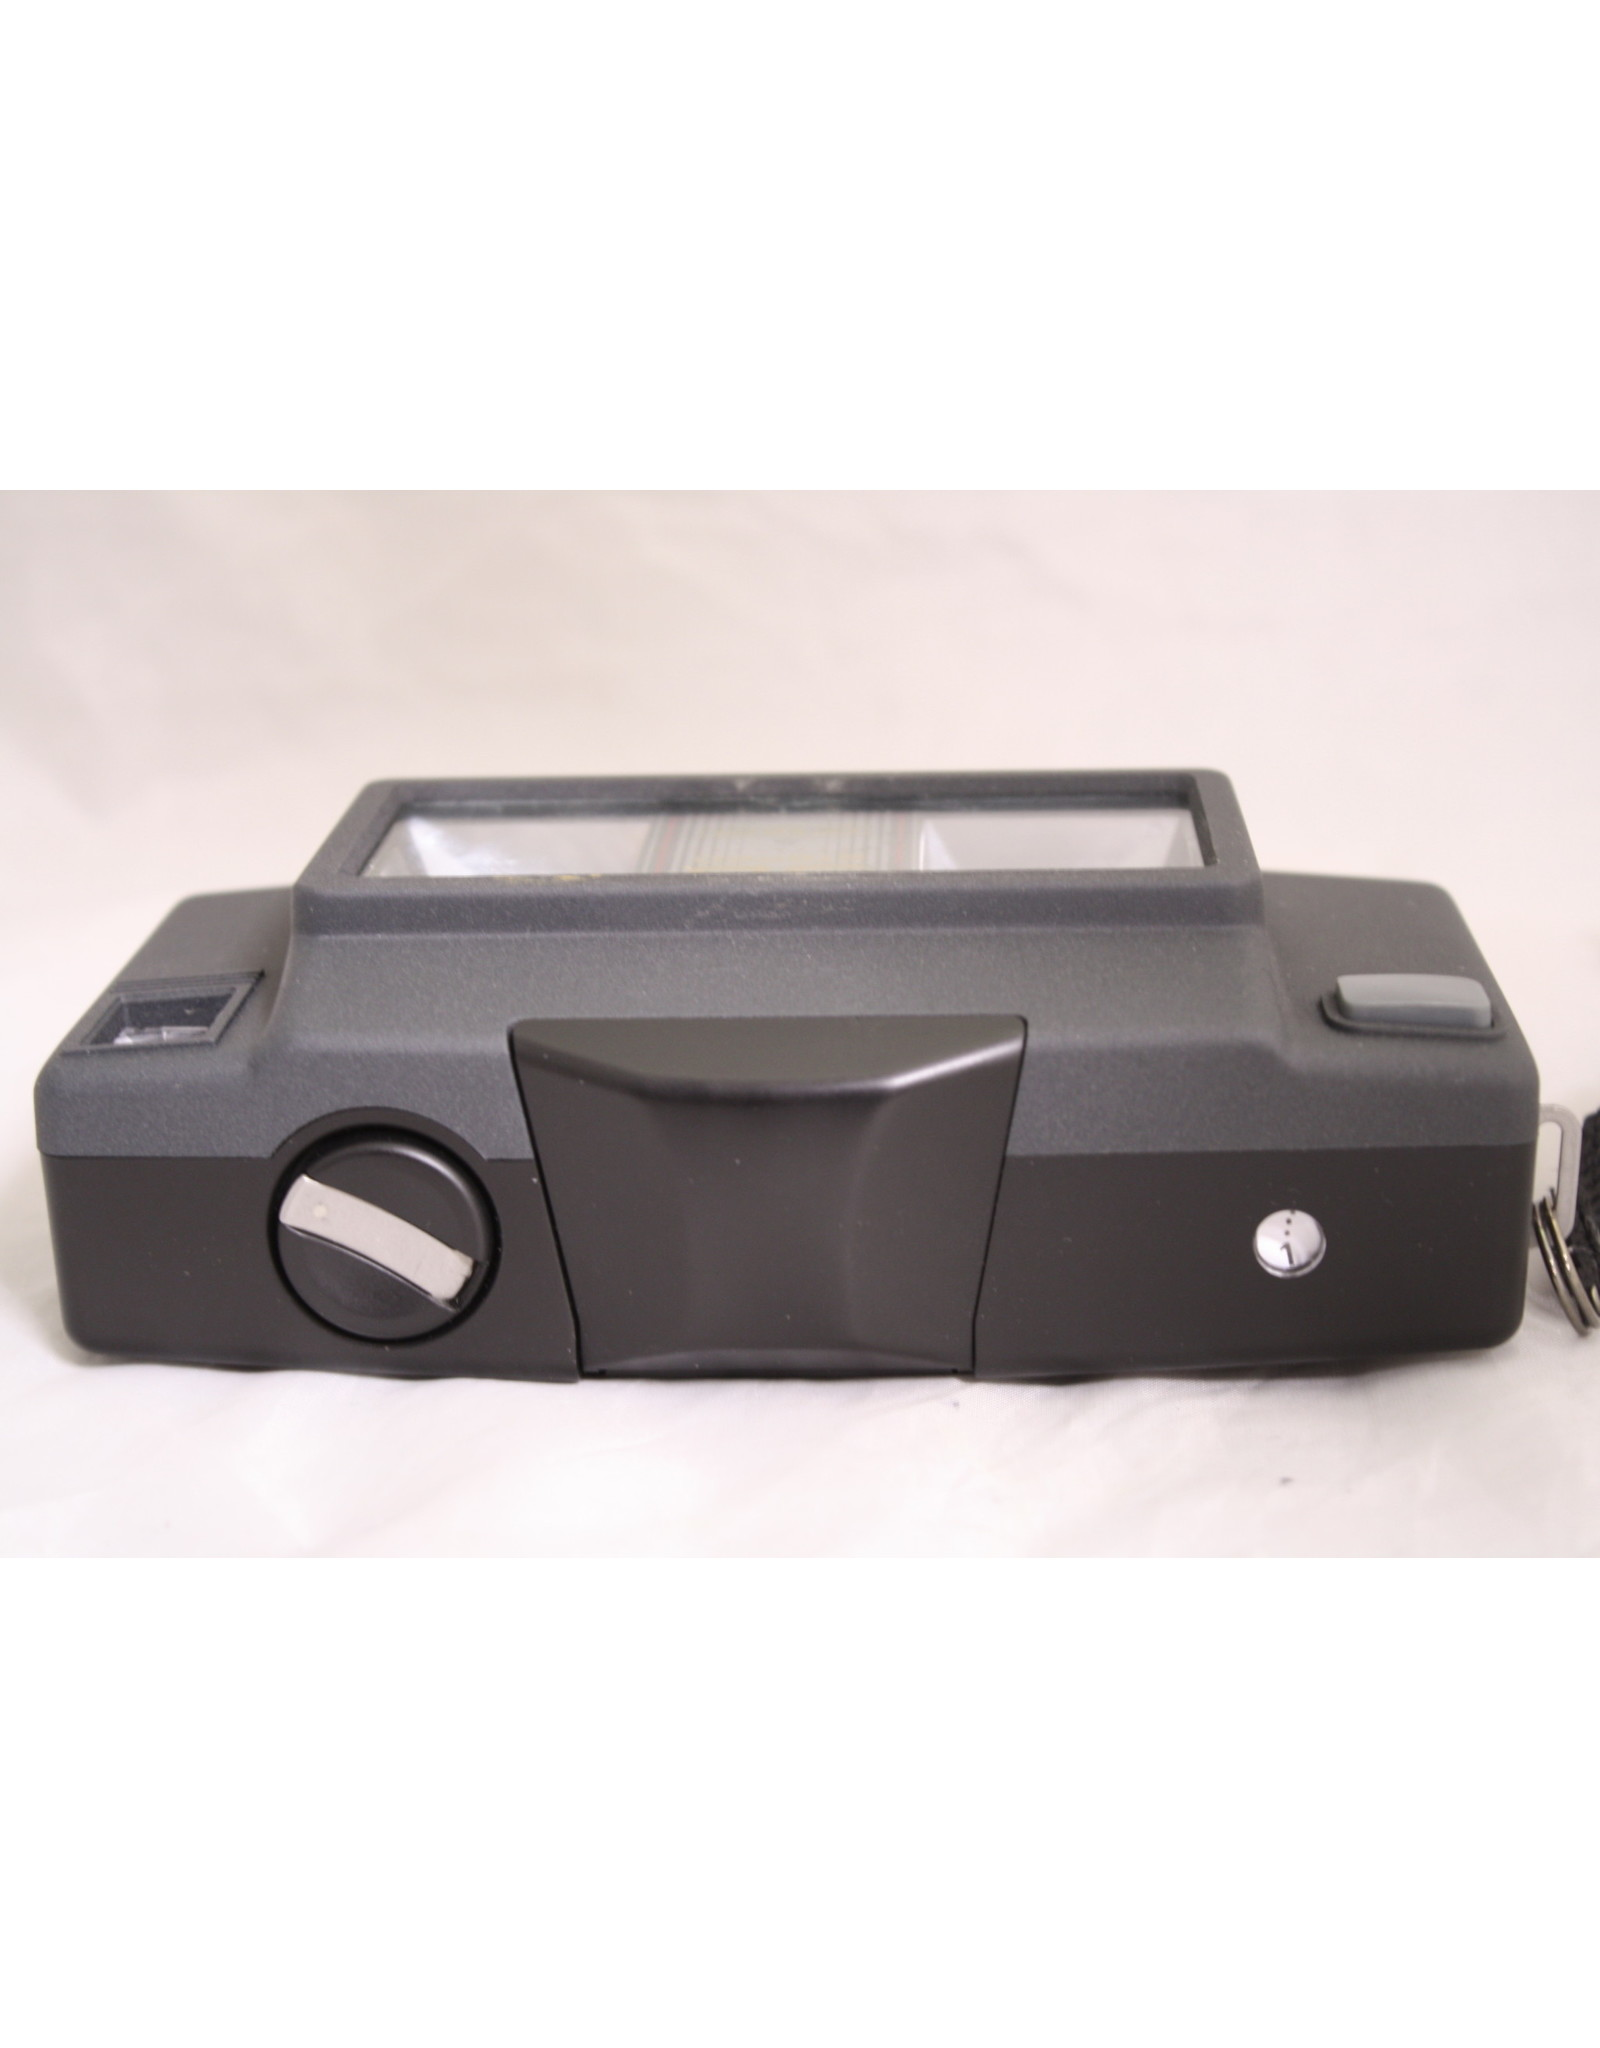 ARGUS 3D STEREO CAMERA (Pre-owned)